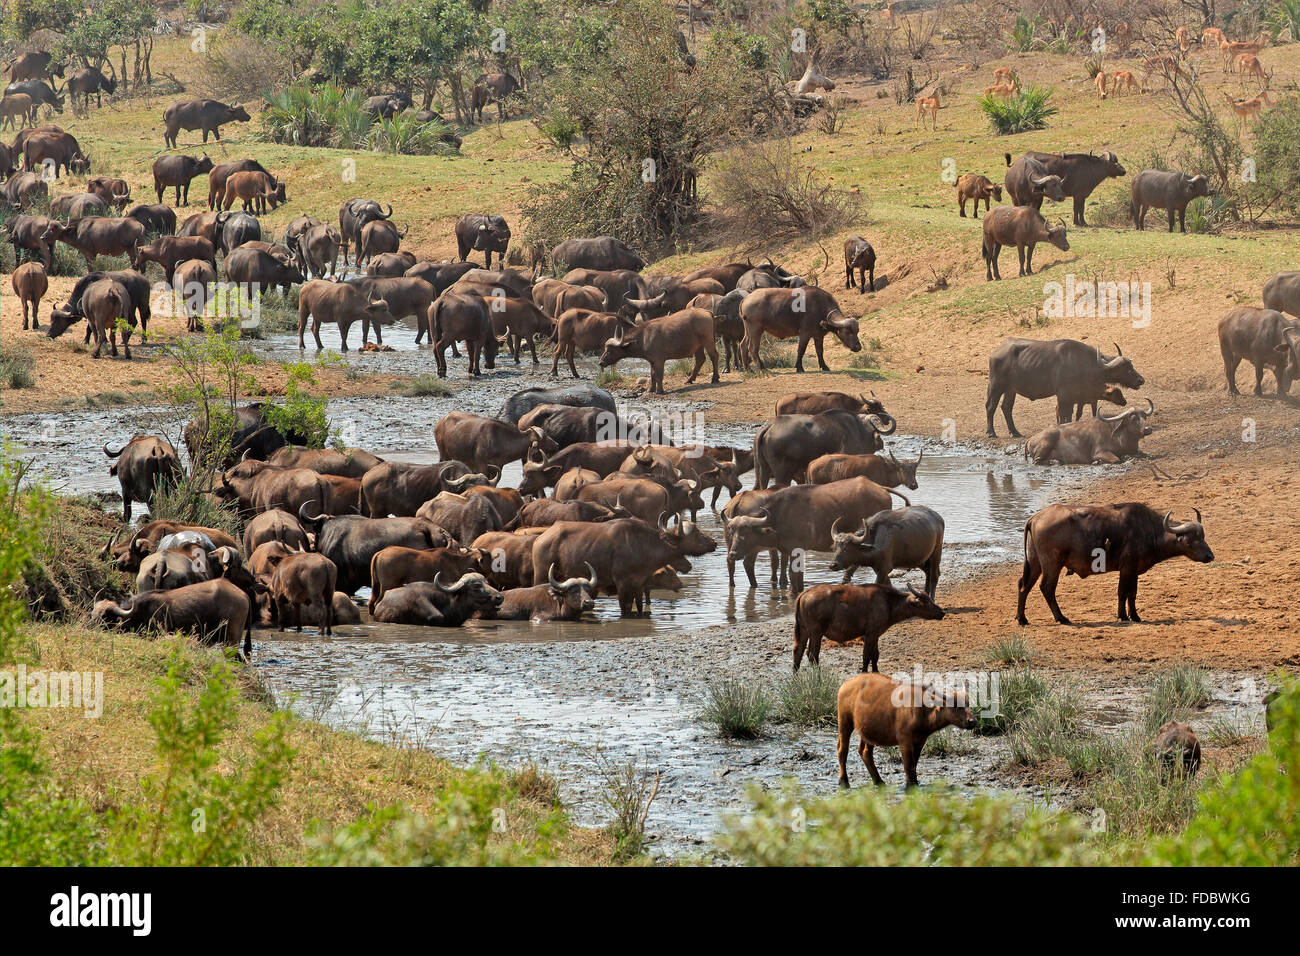 Large herd of African buffaloes (Syncerus caffer) at a river, Kruger National Park, South Africa - Stock Image